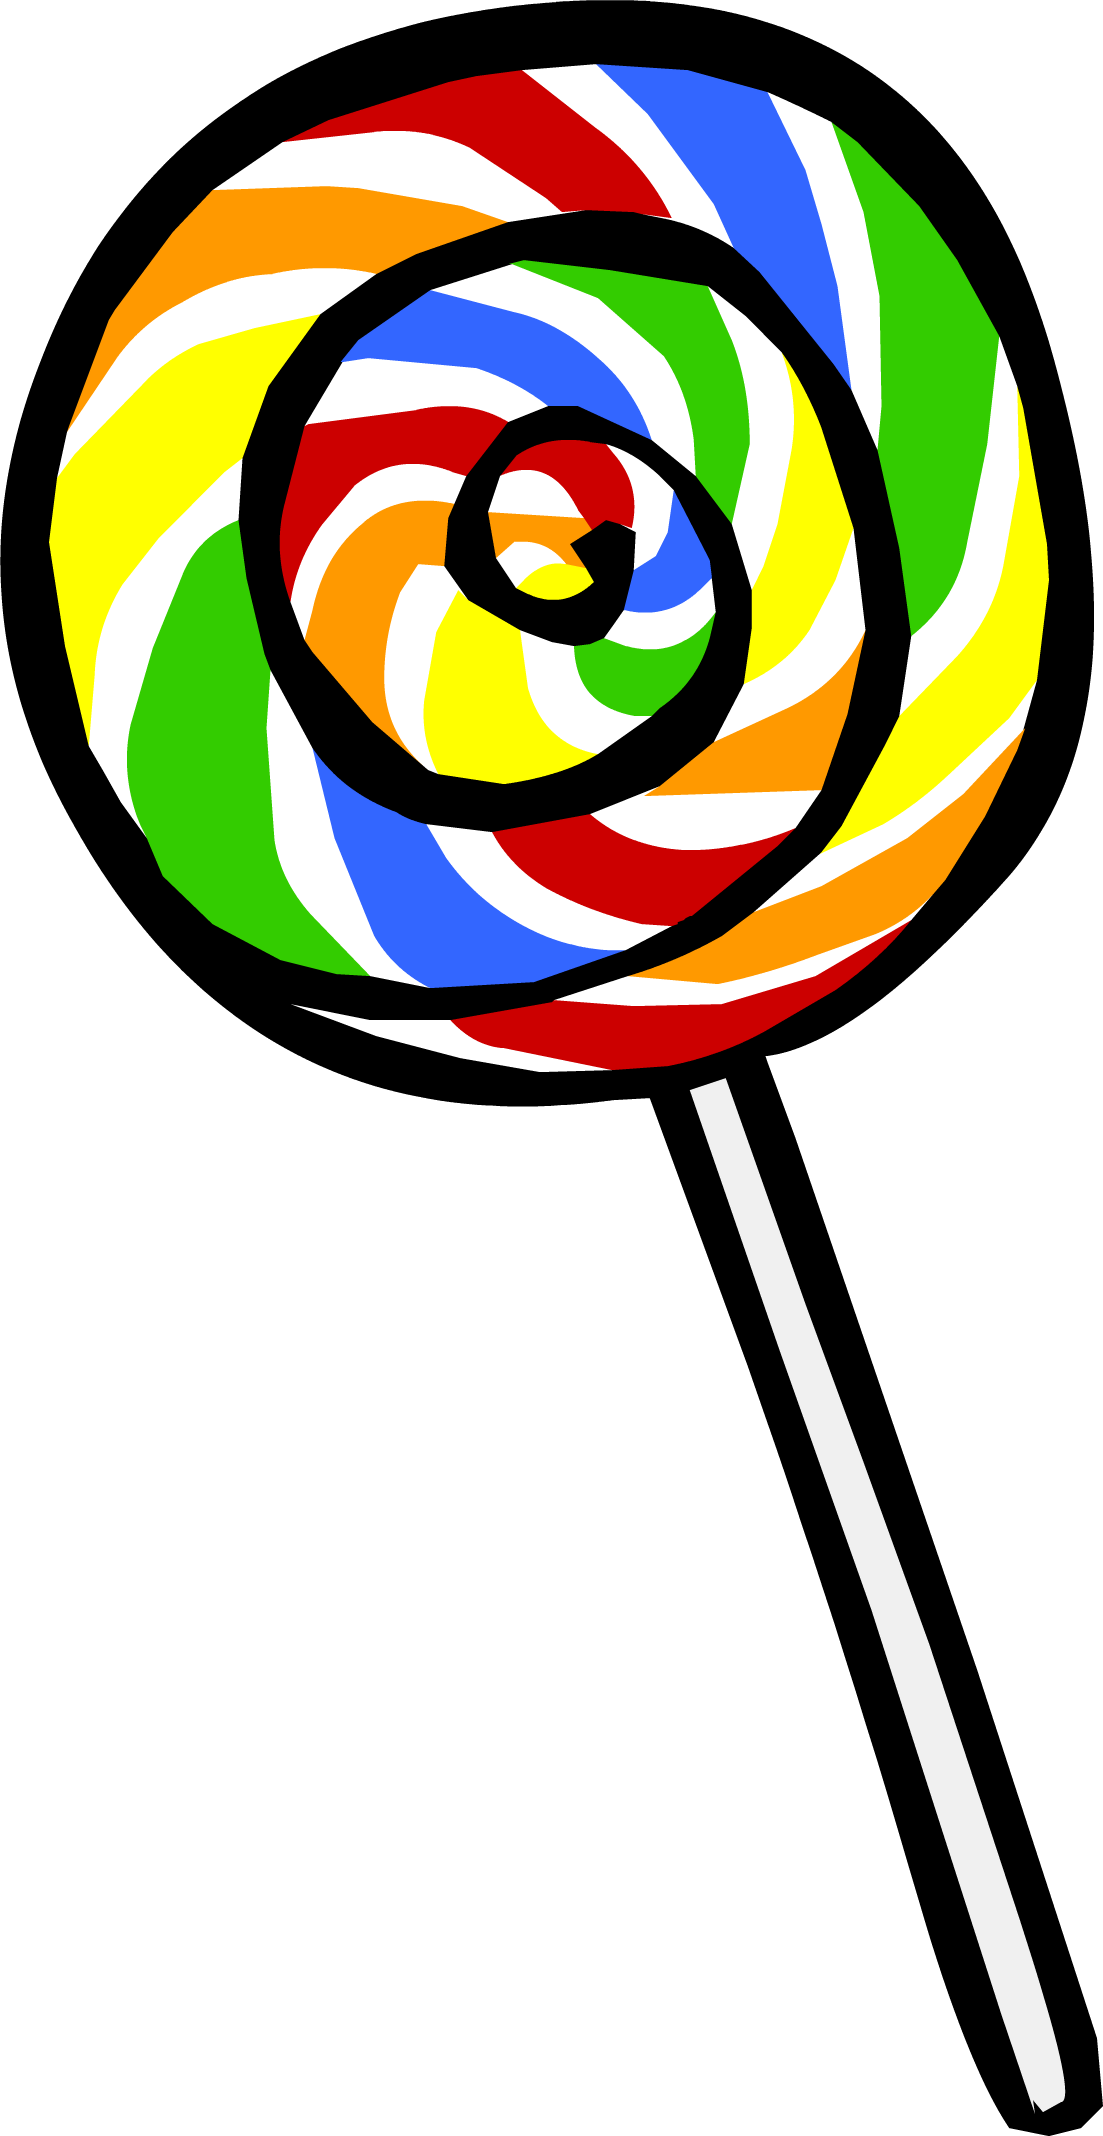 Clipart rainbow candy. Image lollipop png club